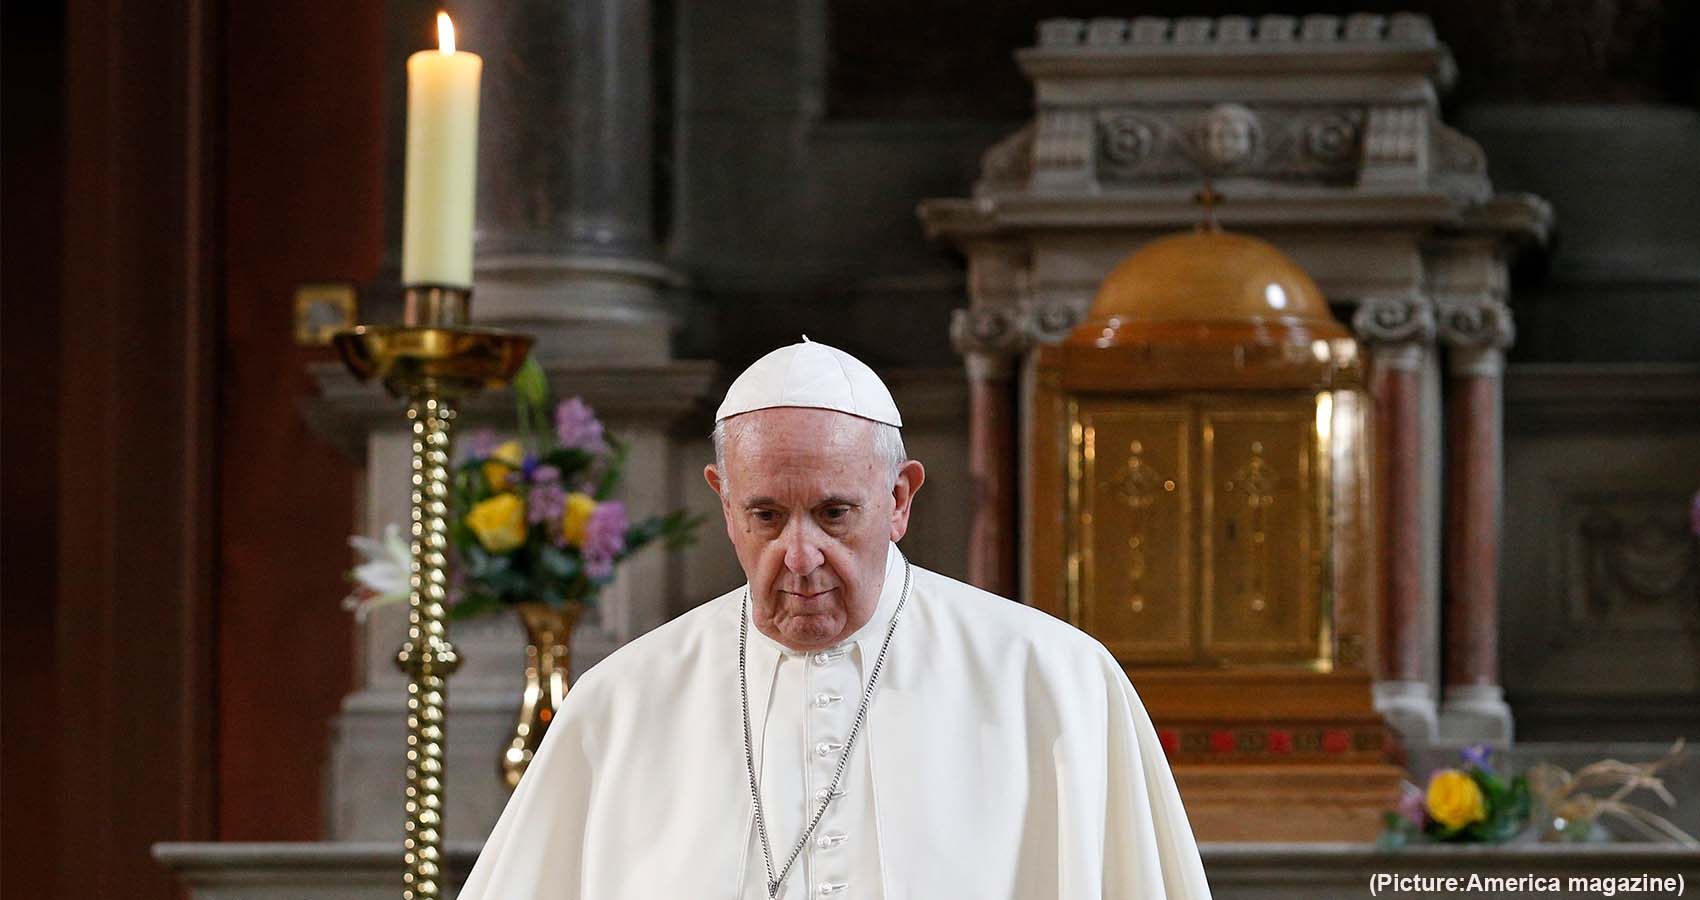 Pope Francis Rules Out Early Resignation